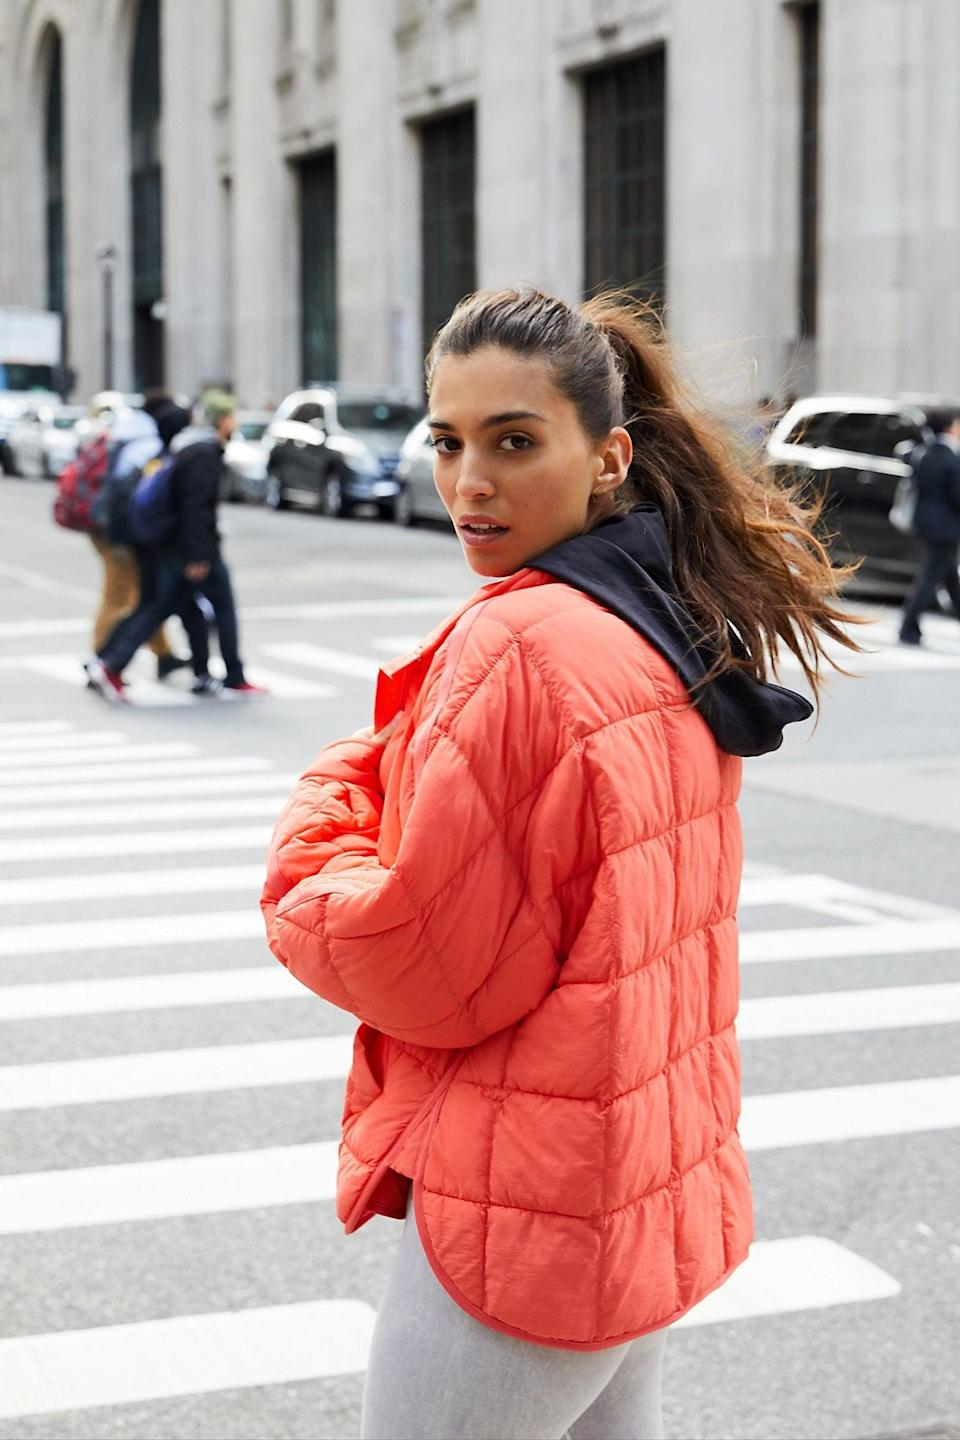 """<p>This <a href=""""https://www.popsugar.com/buy/Pippa-Packable-Puffer-Jacket-527153?p_name=Pippa%20Packable%20Puffer%20Jacket&retailer=freepeople.com&pid=527153&price=148&evar1=fab%3Aus&evar9=45460327&evar98=https%3A%2F%2Fwww.popsugar.com%2Ffashion%2Fphoto-gallery%2F45460327%2Fimage%2F46978003%2FPippa-Packable-Puffer-Jacket&list1=shopping%2Cgifts%2Cfree%20people%2Choliday%2Cgift%20guide%2Cgifts%20for%20women&prop13=api&pdata=1"""" class=""""link rapid-noclick-resp"""" rel=""""nofollow noopener"""" target=""""_blank"""" data-ylk=""""slk:Pippa Packable Puffer Jacket"""">Pippa Packable Puffer Jacket</a> ($148) folds and zips up so tiny, making it the perfect piece to travel with.</p>"""